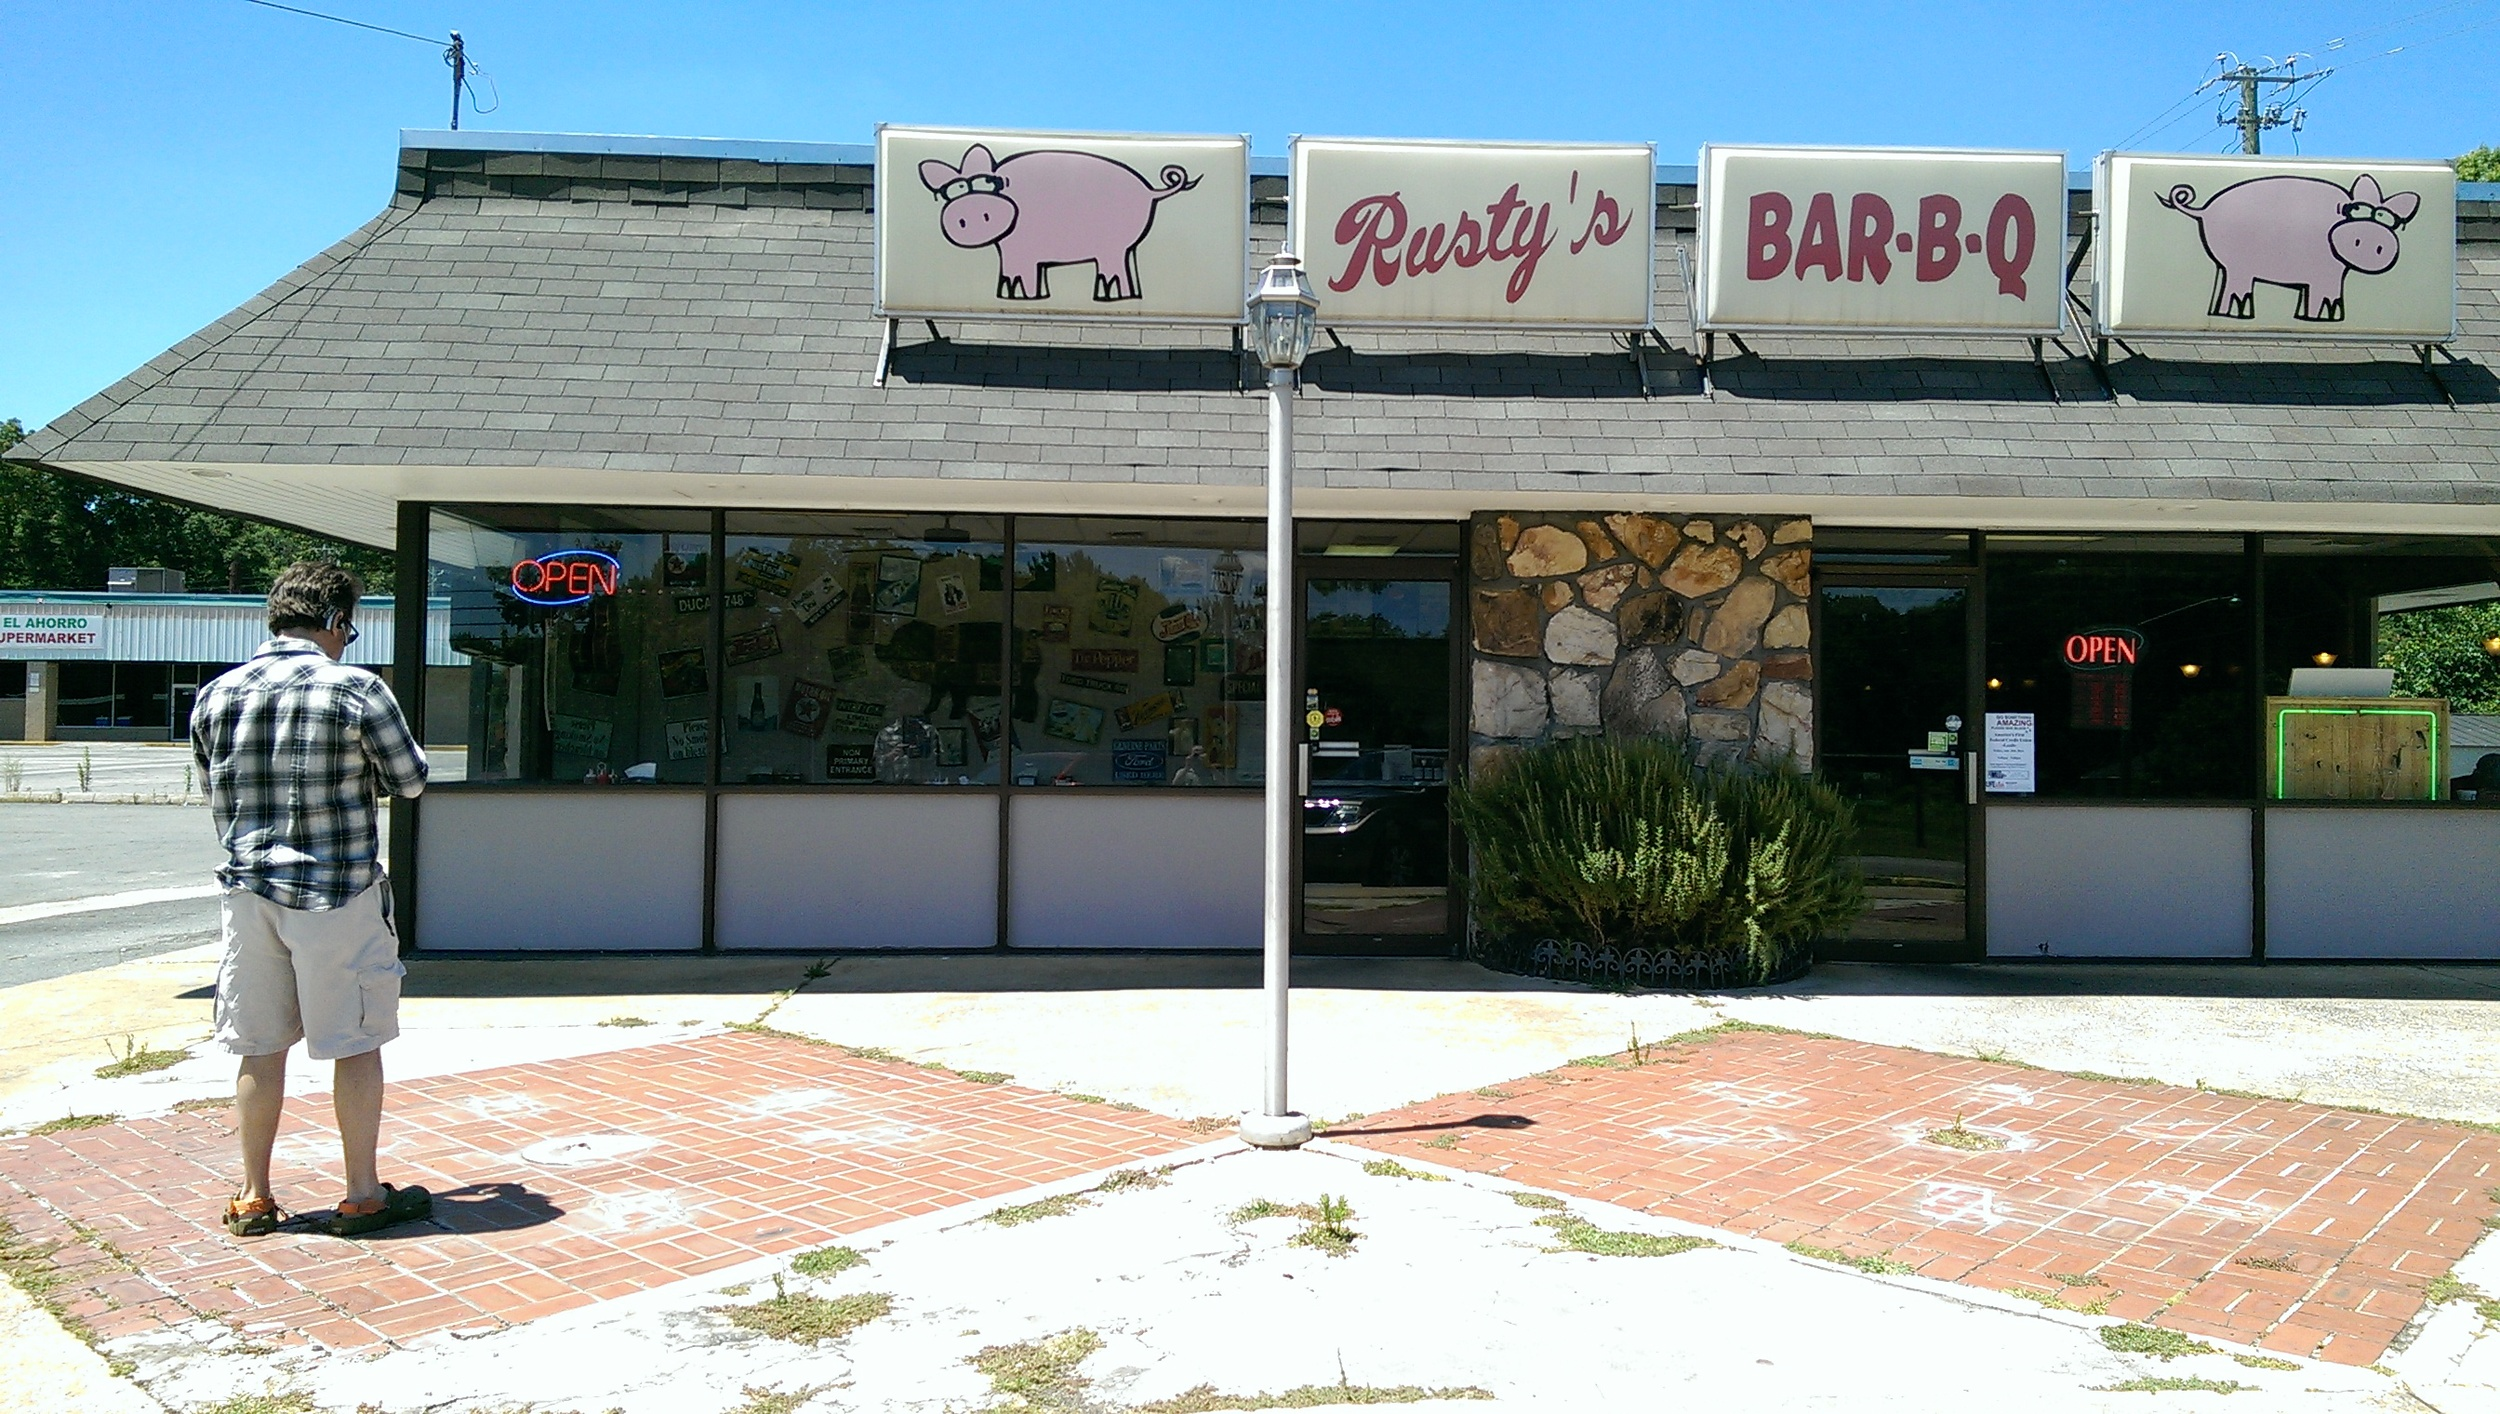 Rusty's Bar-B-Q in Leeds, Alabama, just outside Birmingham.